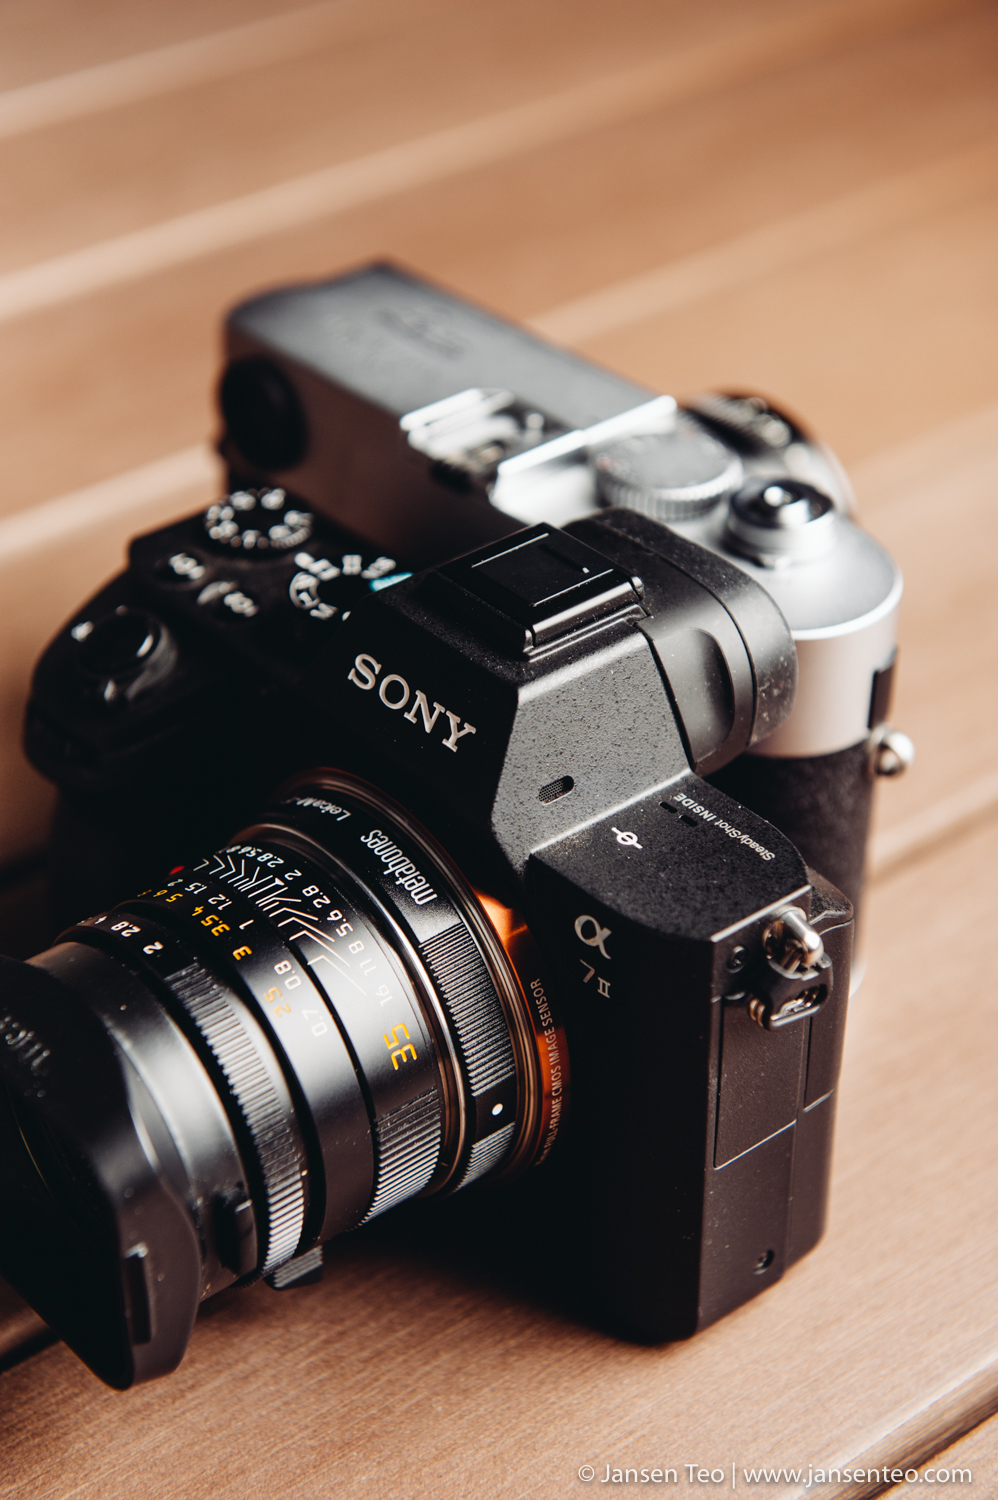 Sony A7ii and Leica M9 / M9-P Overview